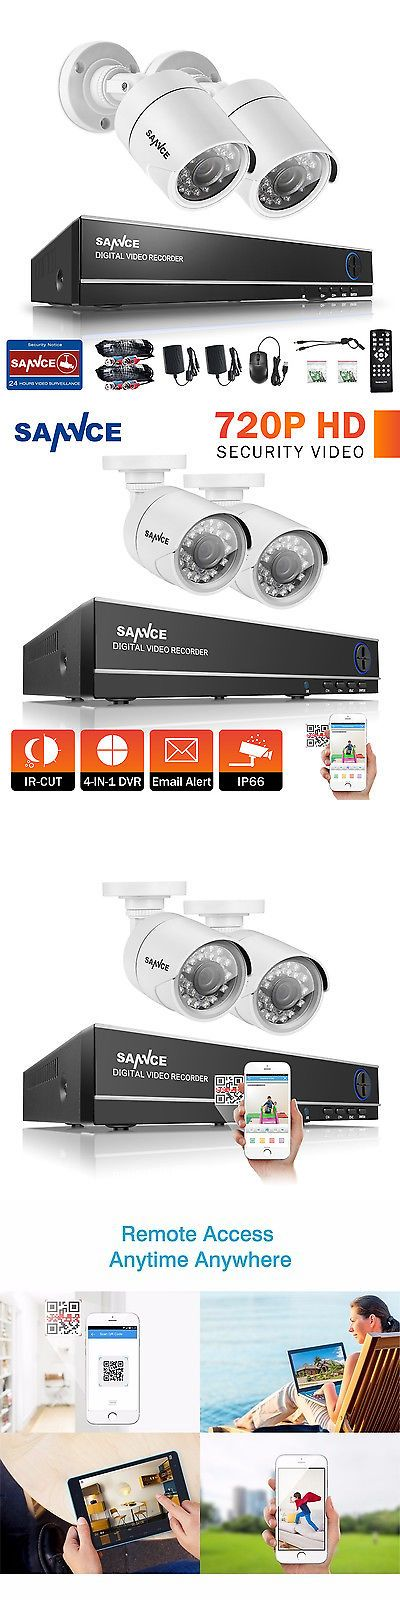 Security Cameras: Sannce 4Ch 1080N 4In1 Dvr 720P Ir Night Vision Tvi Home Security Camera System -> BUY IT NOW ONLY: $59.99 on eBay!